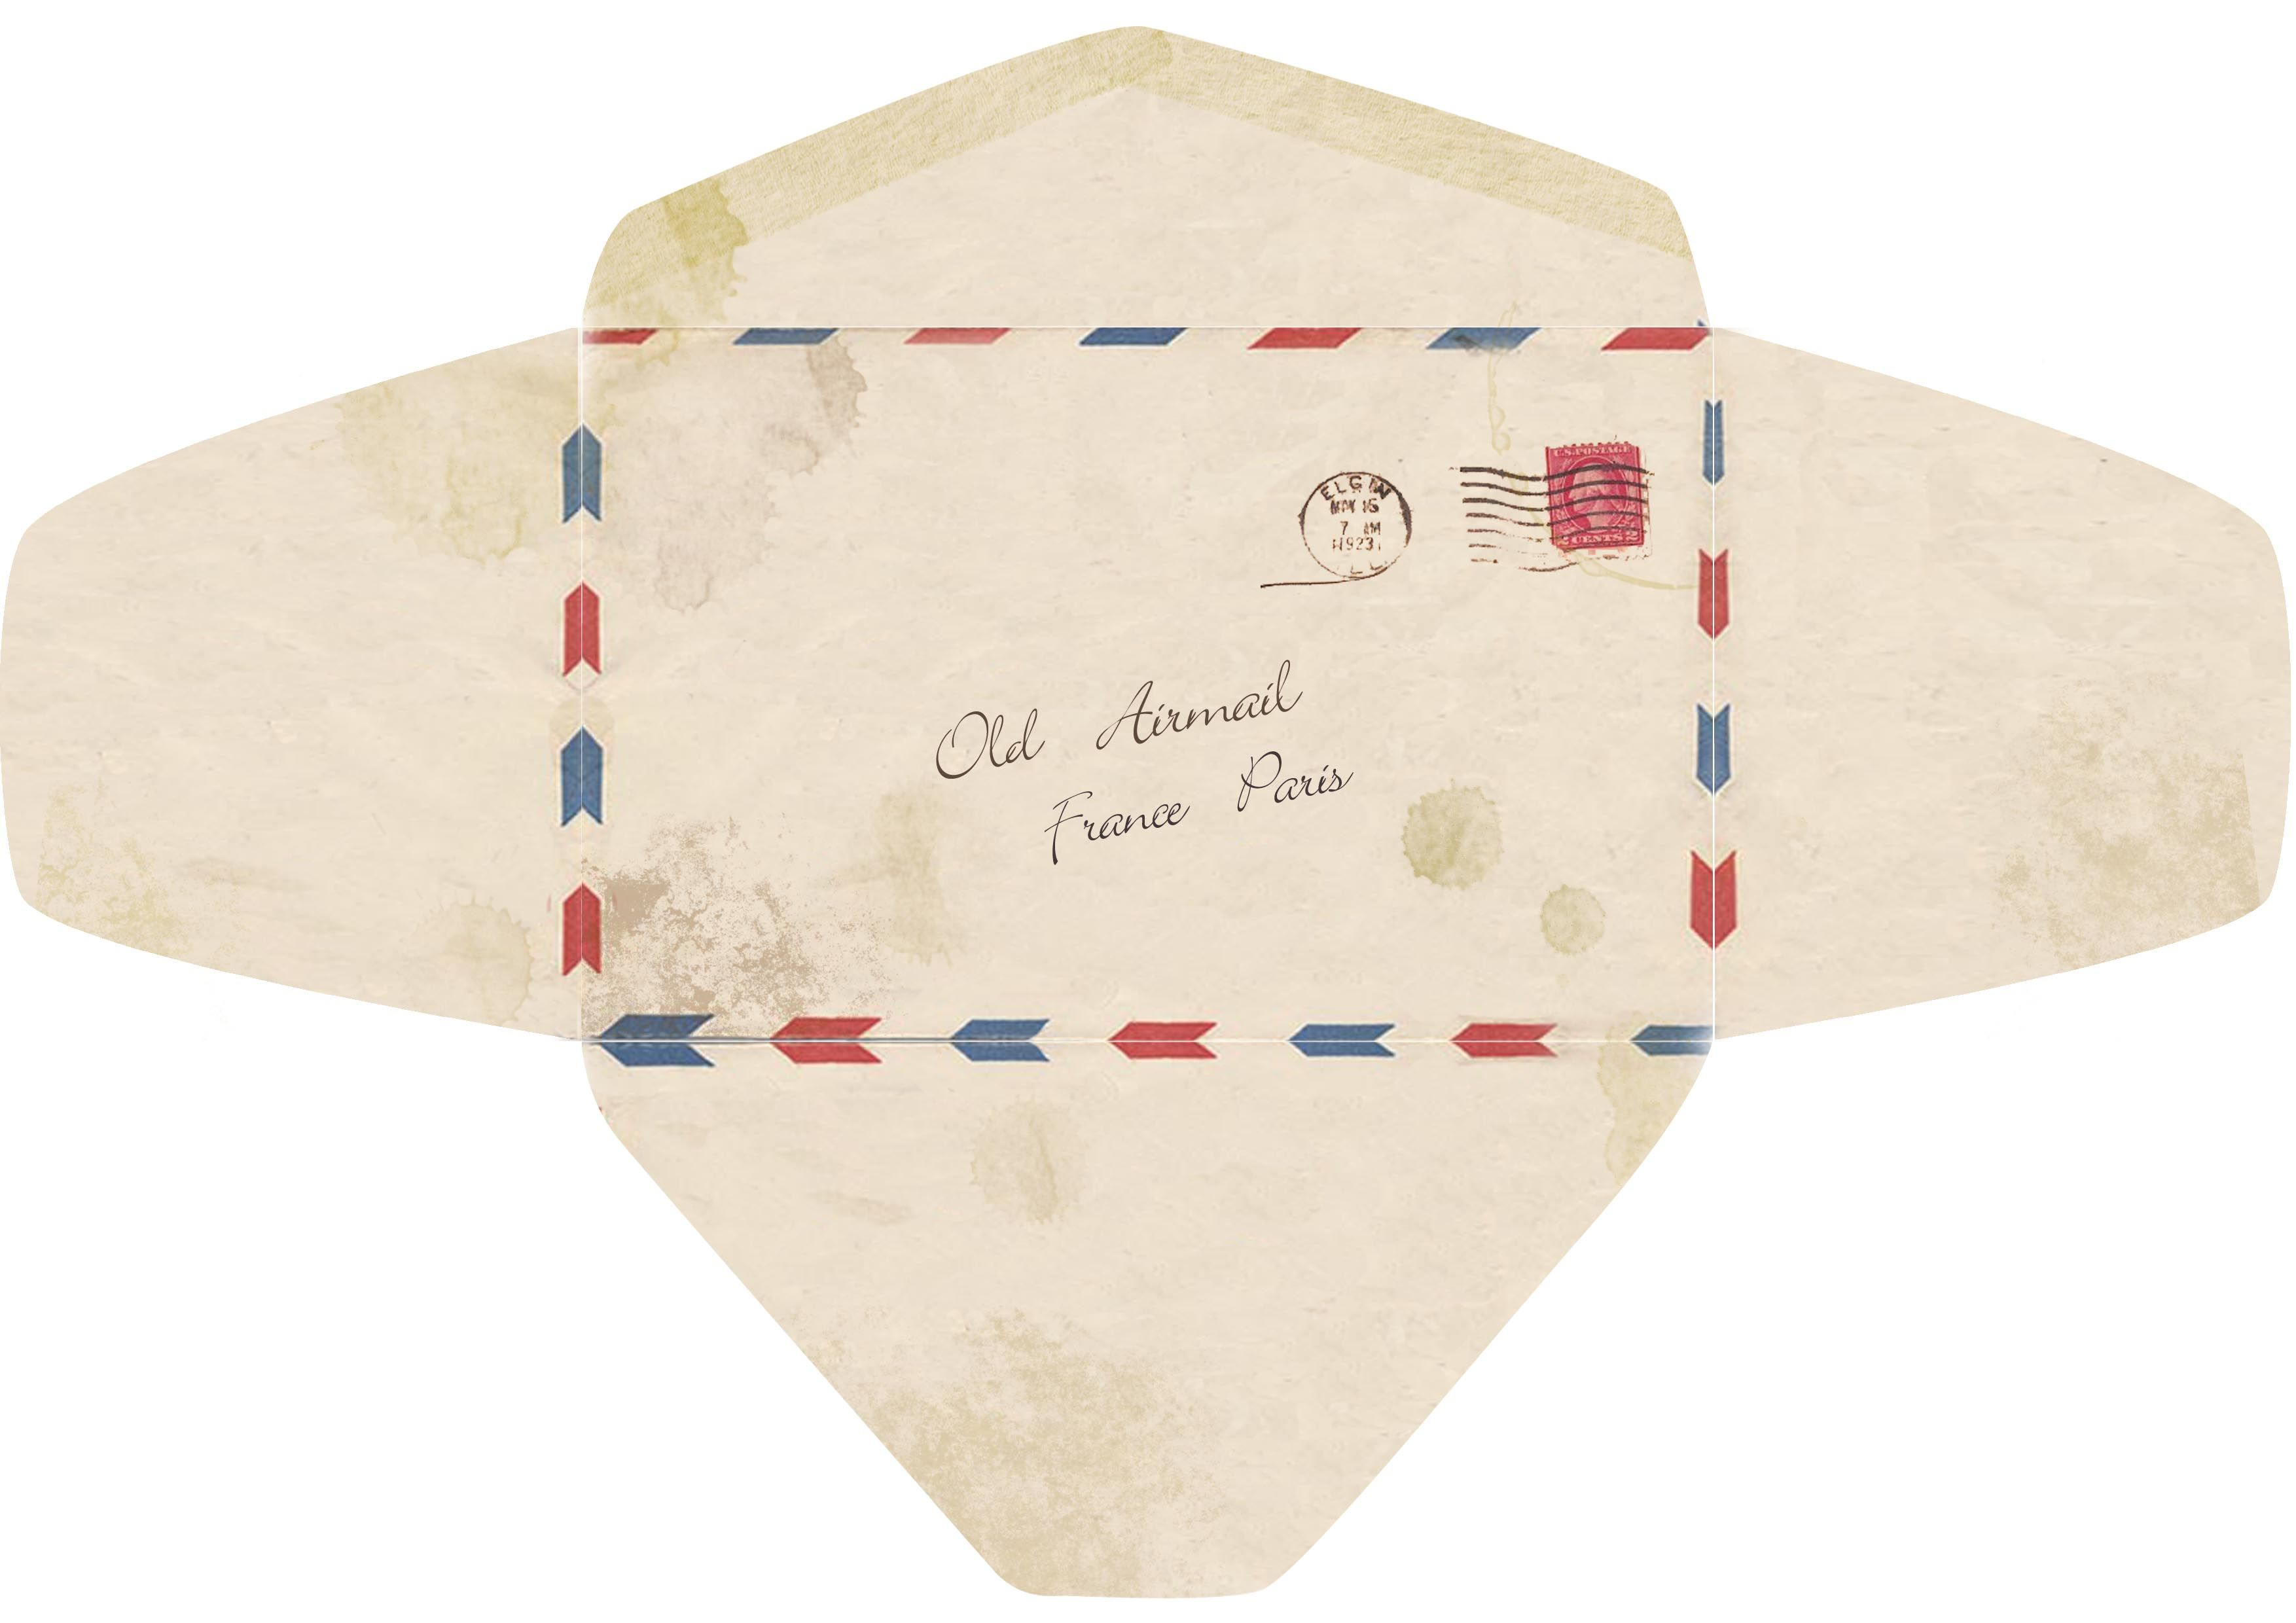 Where to write airmail on envelope